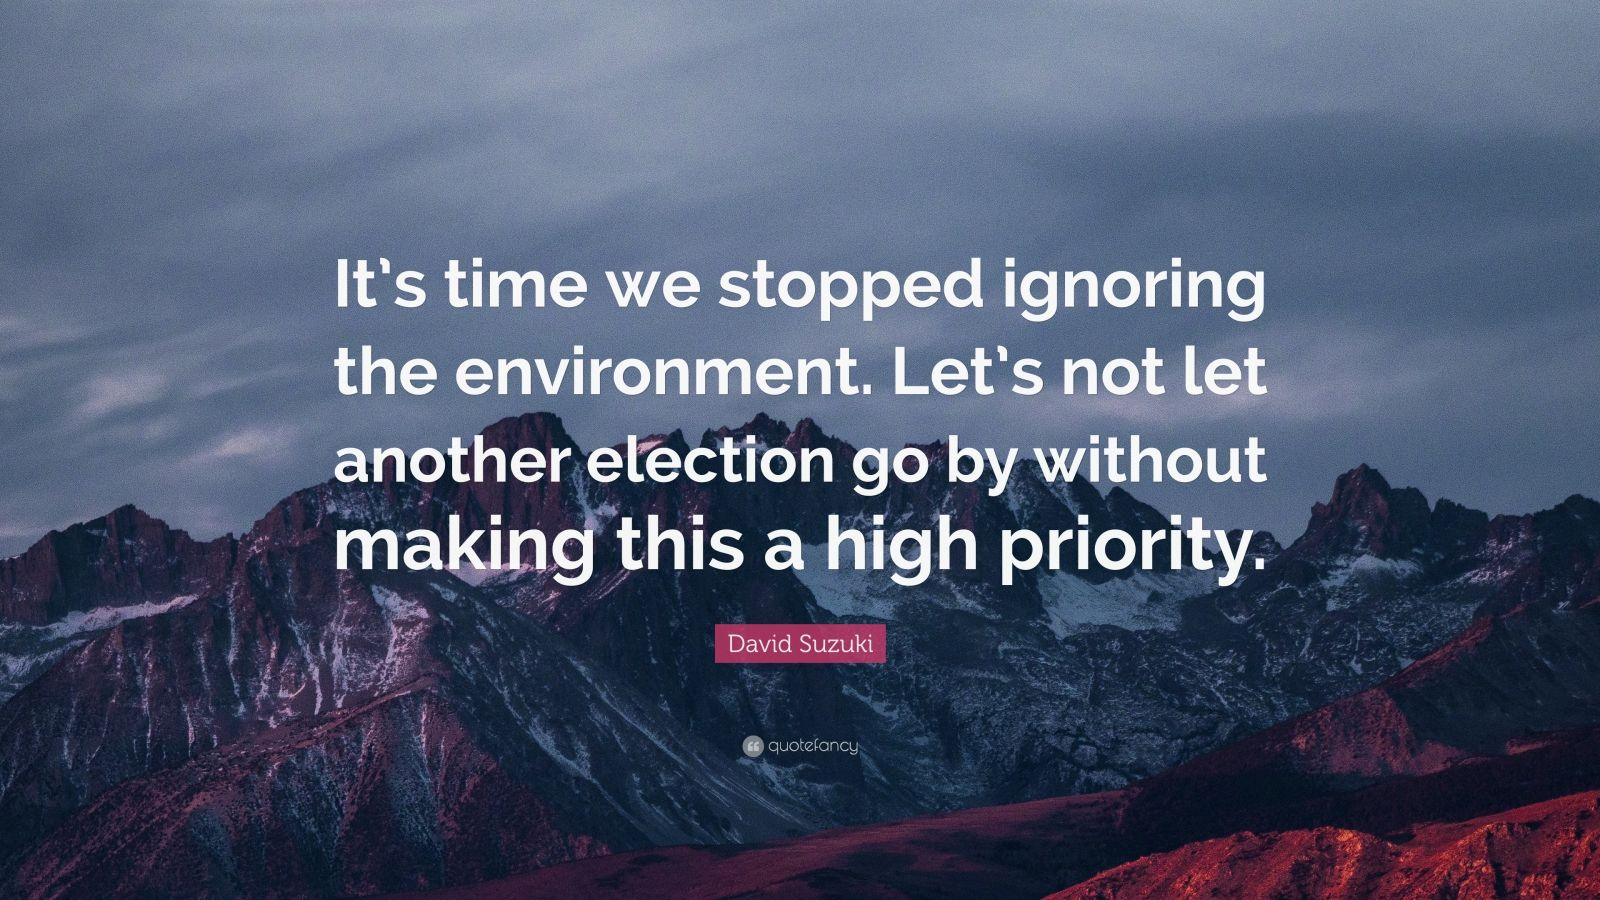 """David Suzuki Quote: """"It's time we stopped ignoring the environment. Let's not let another election go by without making this a high priority."""""""